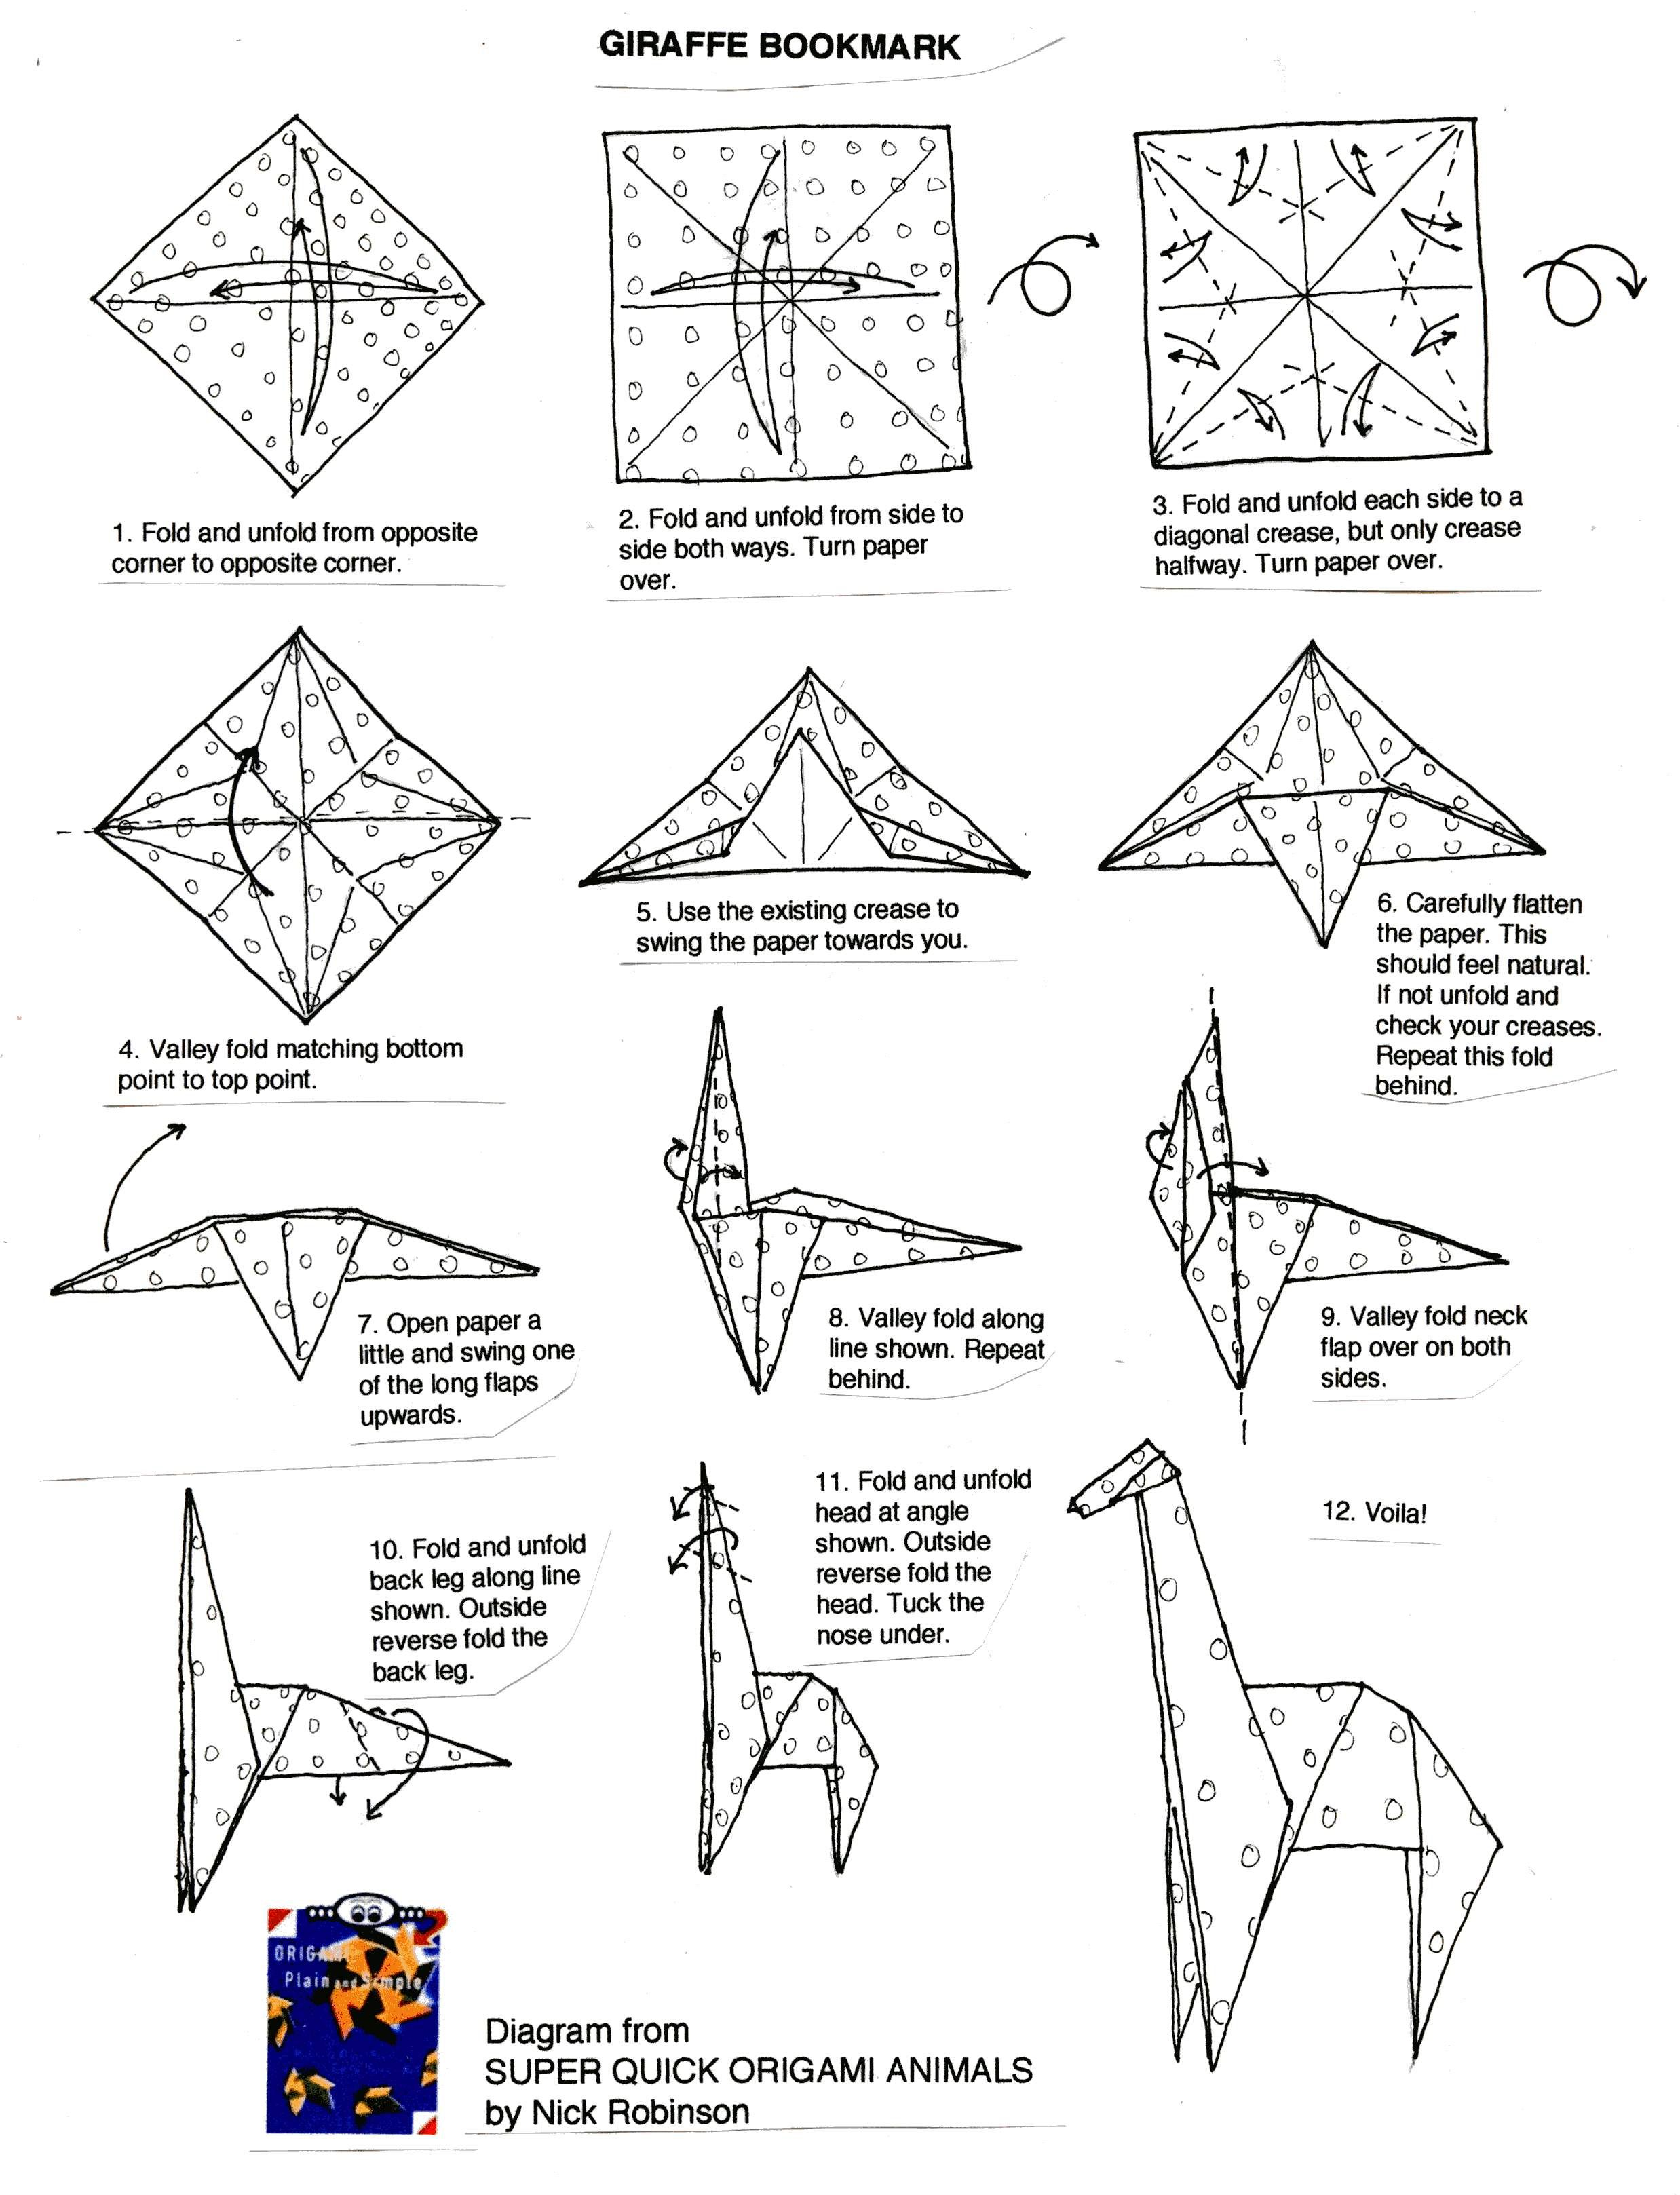 Origami instructions on Pinterest | Origami Instructions ... - photo#42